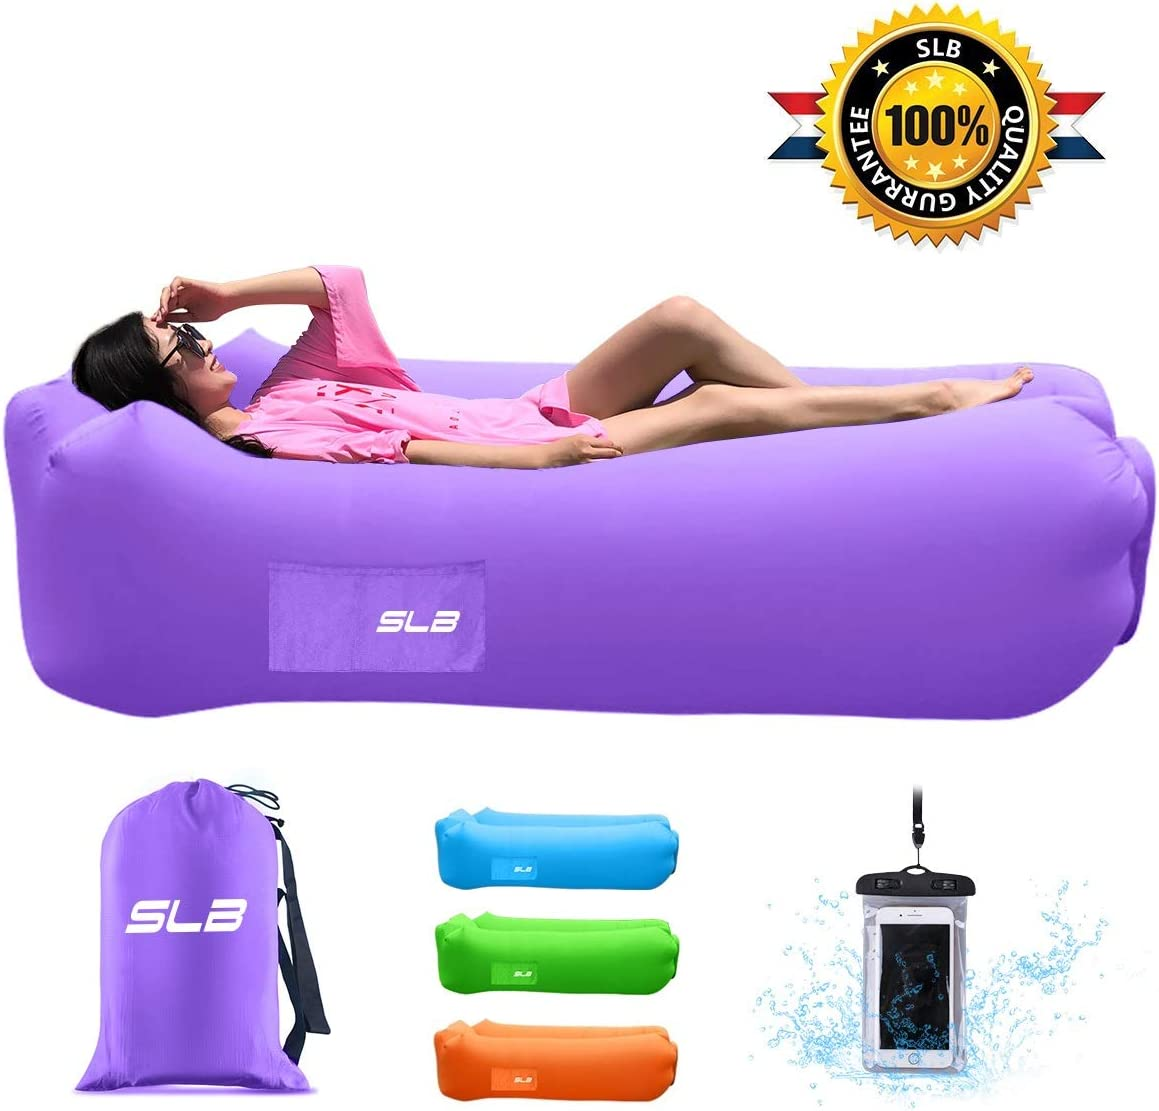 Lidl air test lounger Can i